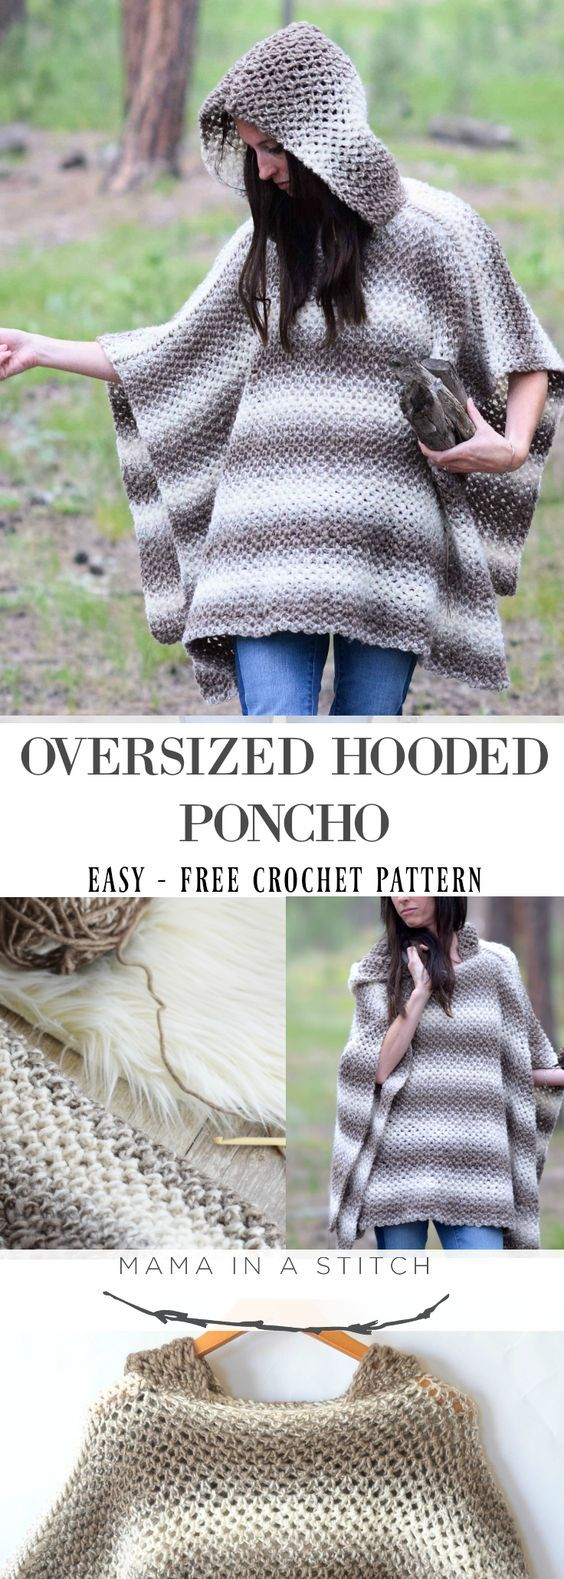 Driftwood Oversized Crochet Hooded Poncho Pattern | Crochet | Pinterest